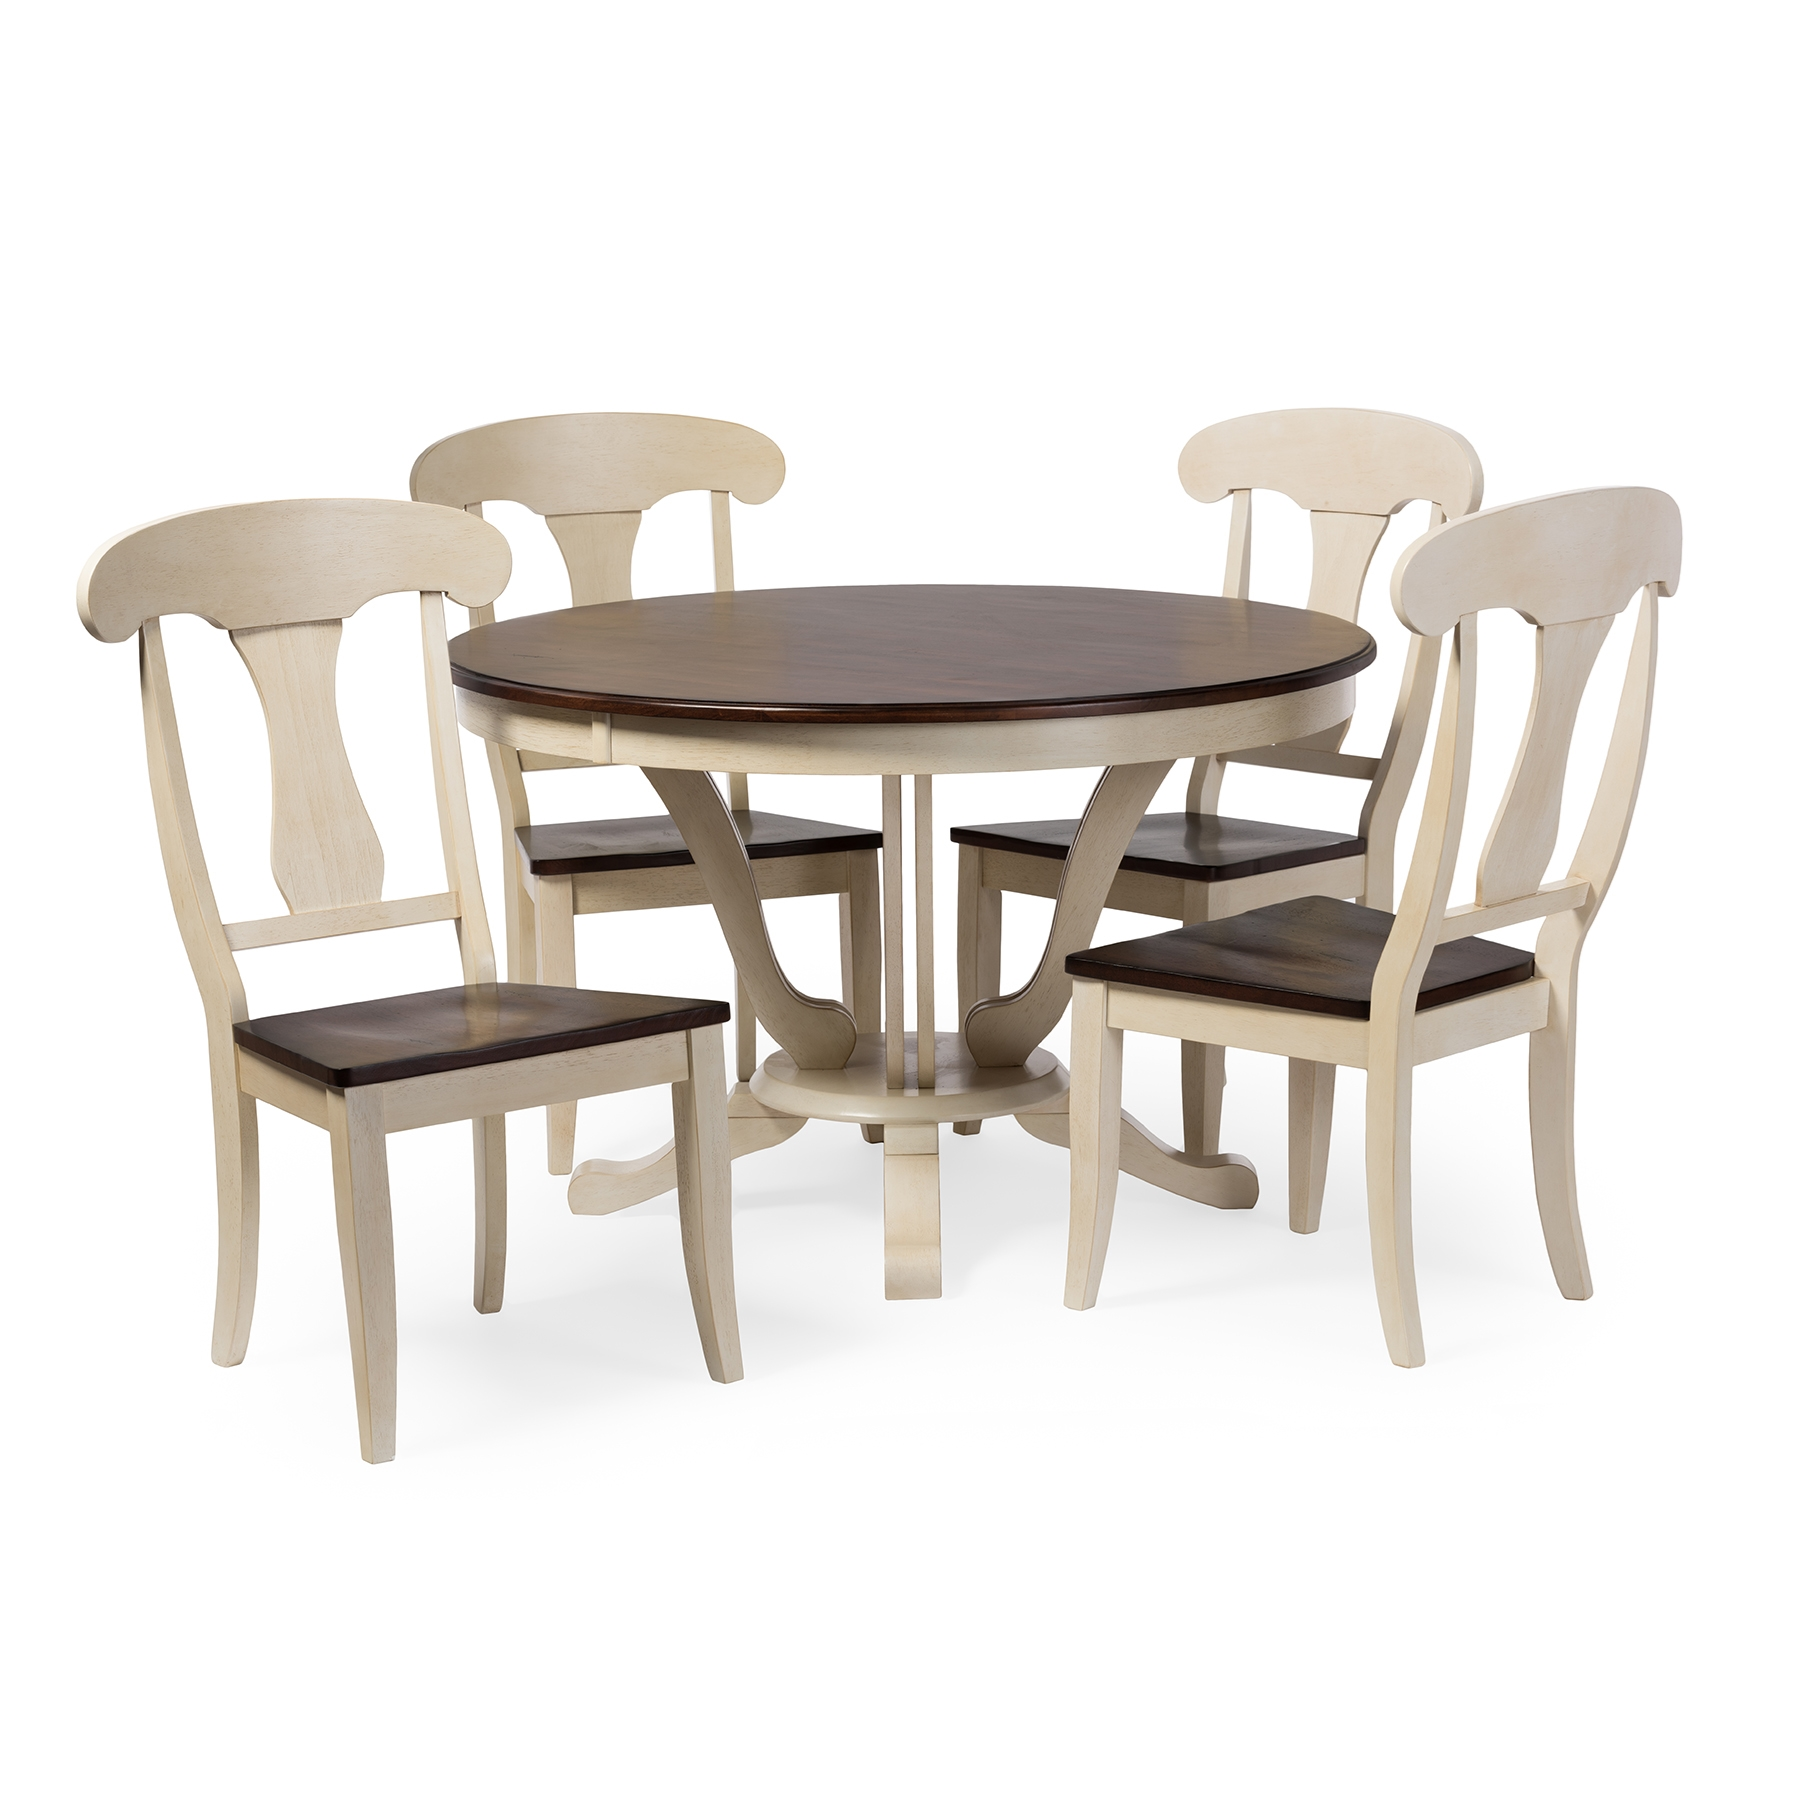 Baxton Studio Napoleon Chic Country Cottage Antique Oak Wood And Distressed  White 5 Piece Dining Set With 48 Inch Round Pedestal Base Fixed Top Dining  Table